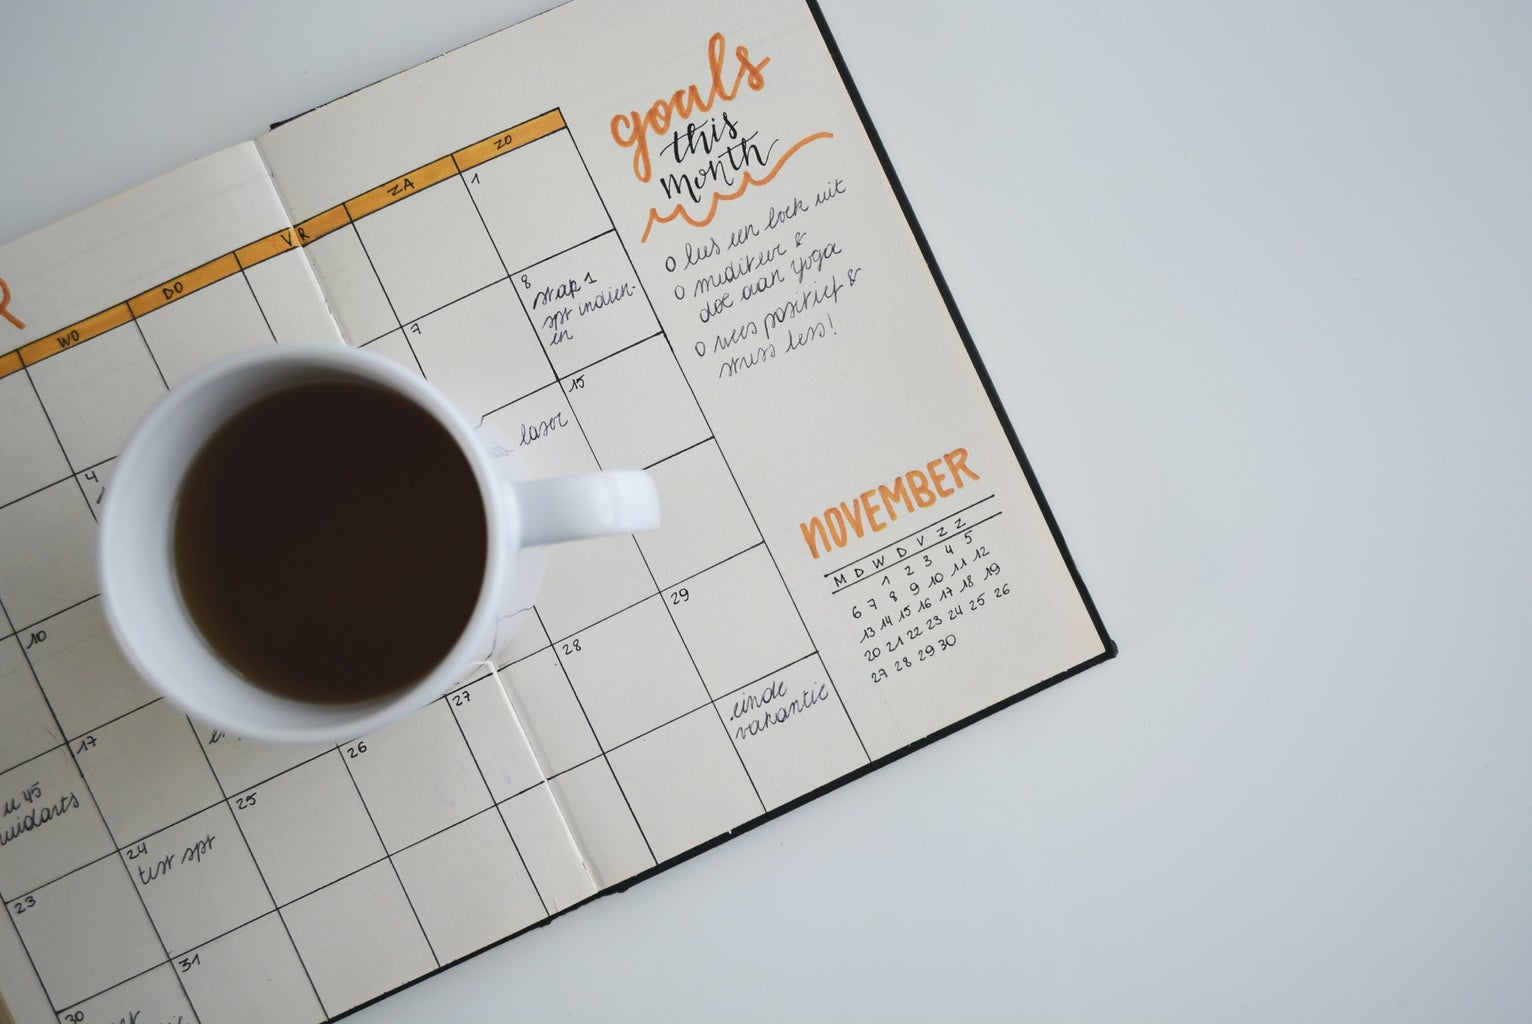 Coffee in a cup placed on top of a notebook. The notebook is lined with a calendar that has been filled out with events.